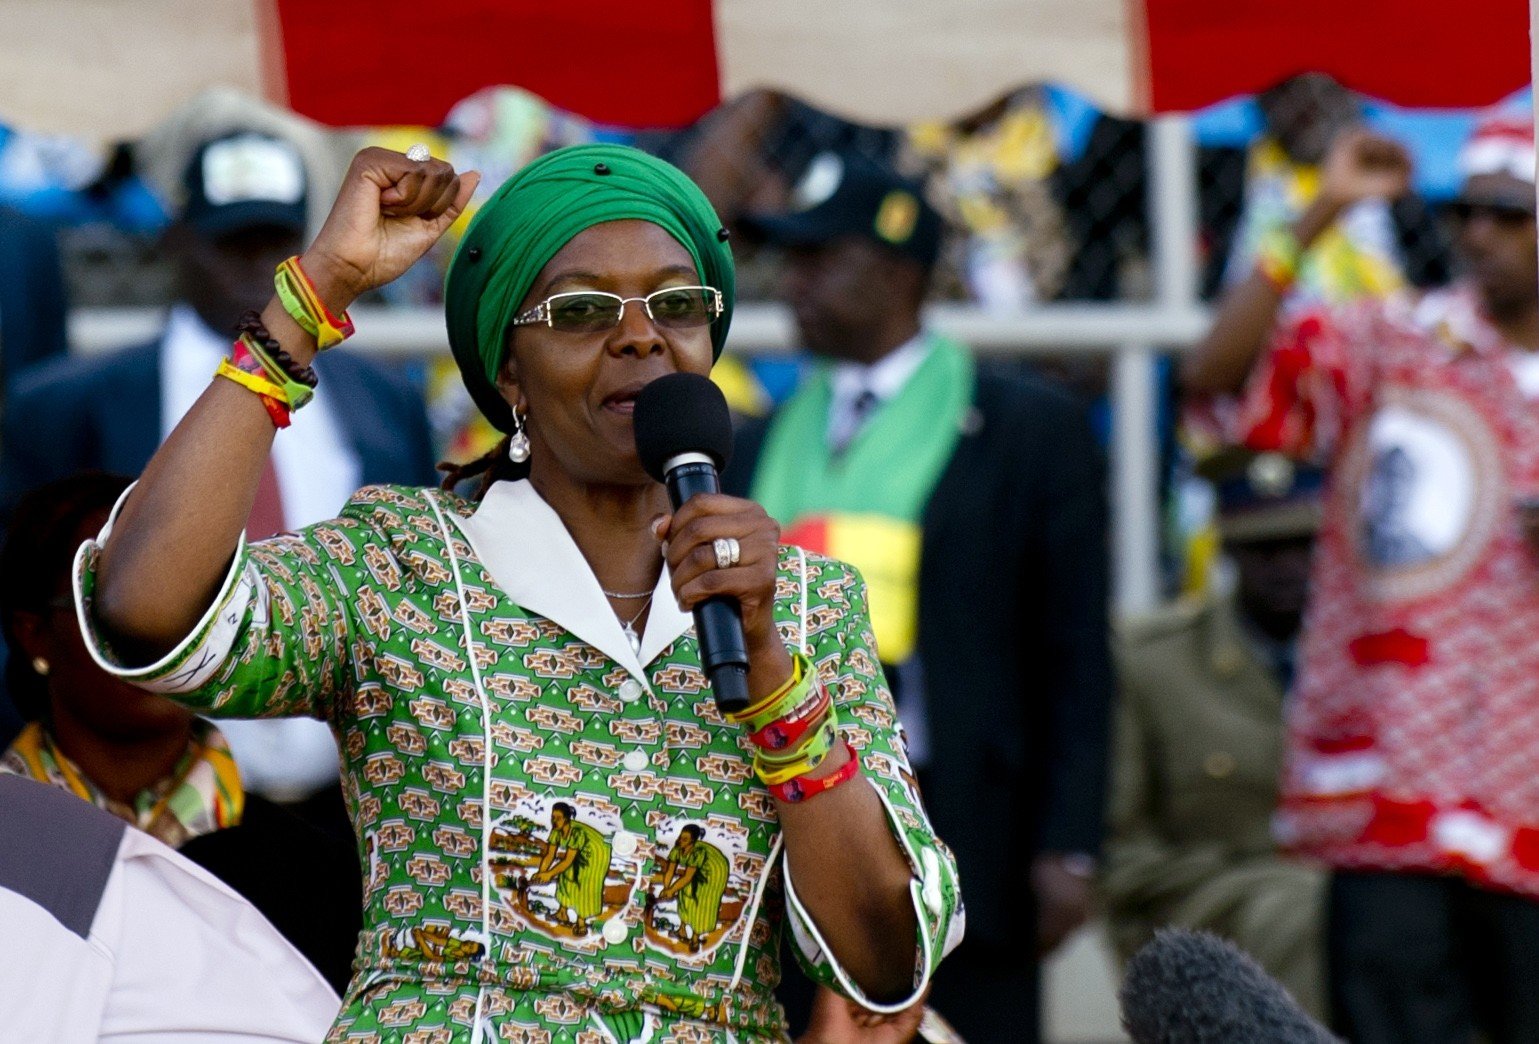 This file photo taken on July 28, 2013 shows Zimbabwean President's wife, Grace Mugabe raising her fist as she speaks during a rally in Harare. (AFP Photo)